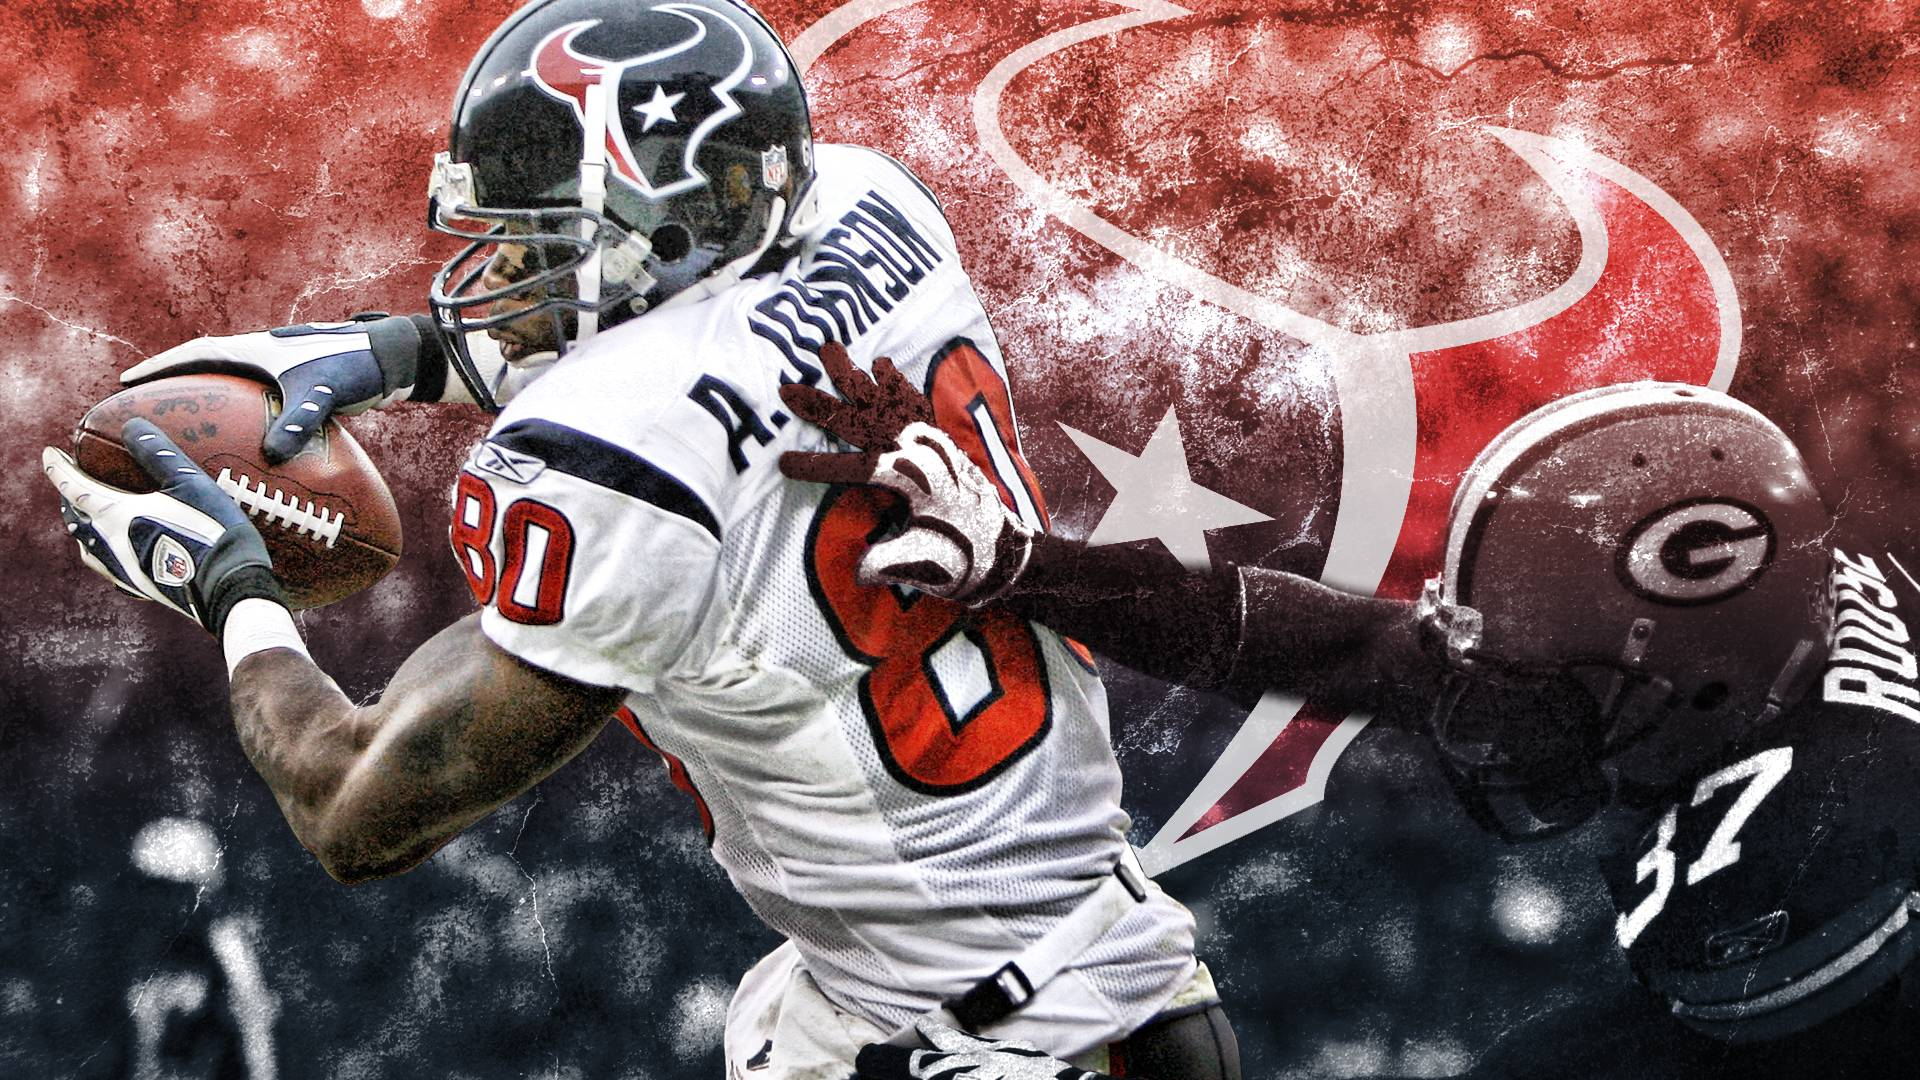 nfl american football wallpapers - photo #23